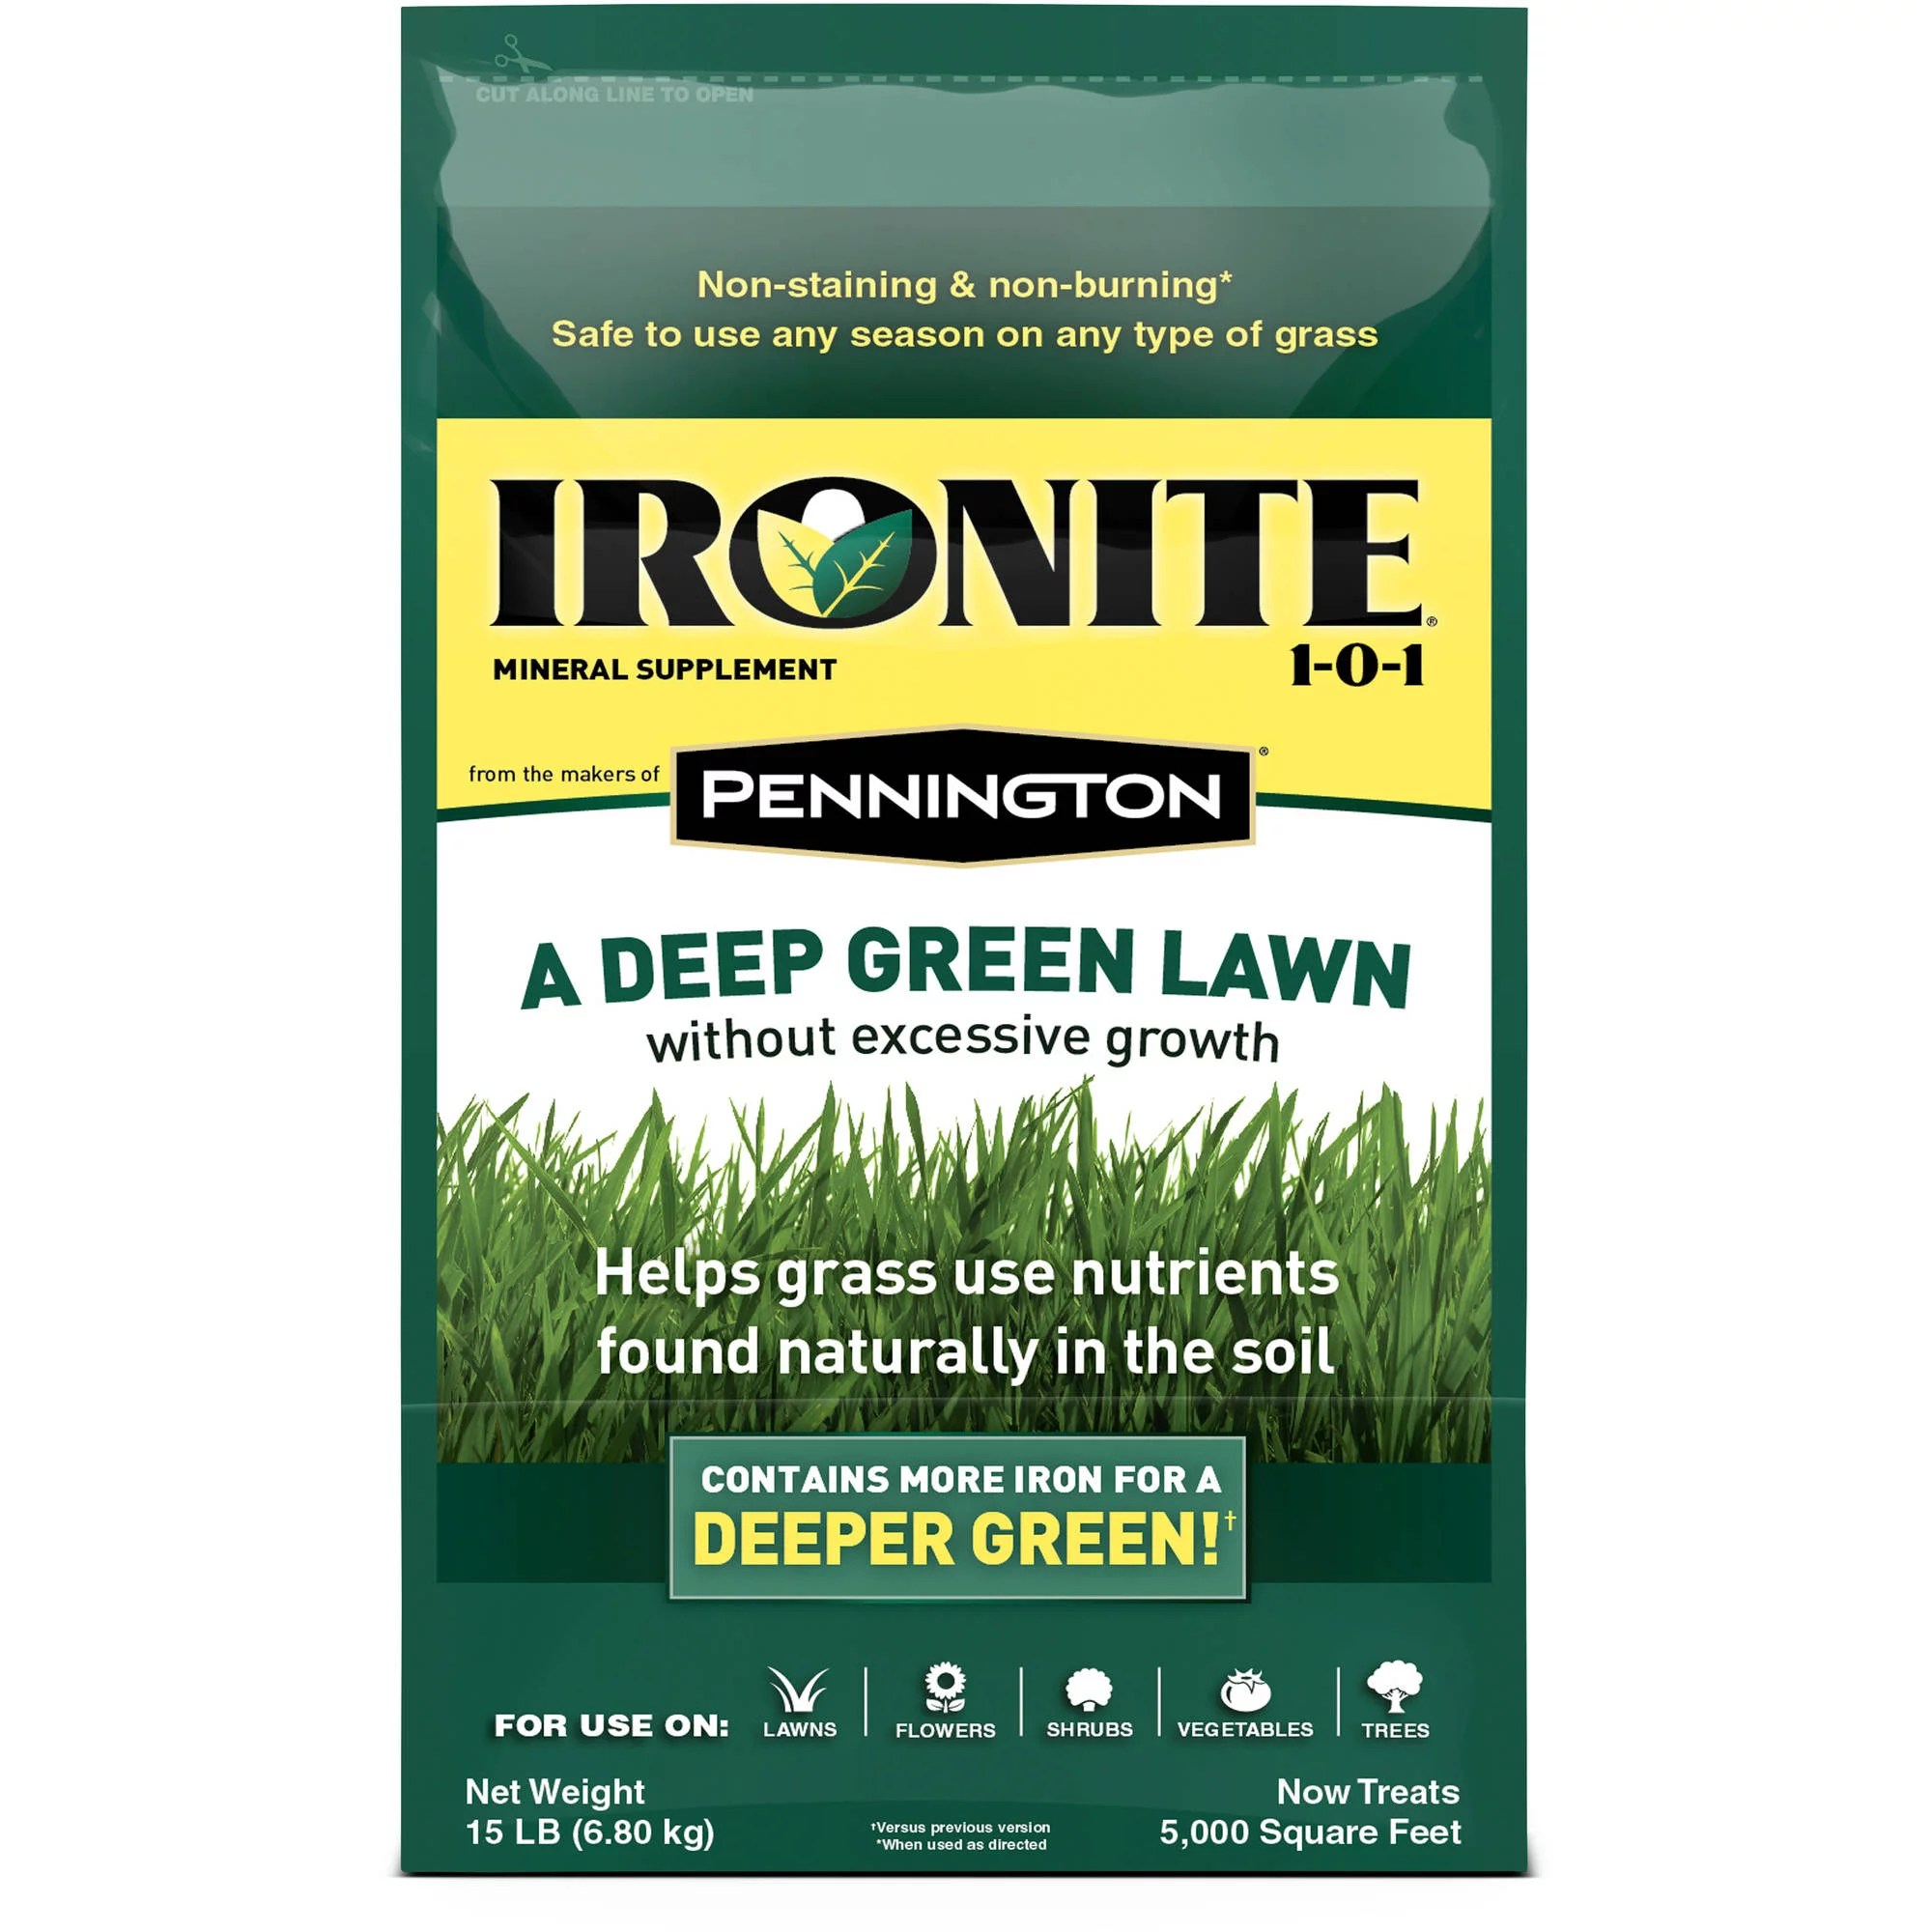 Ironite Ironite Mineral Supplement By Pennington 1-0-1 Soil